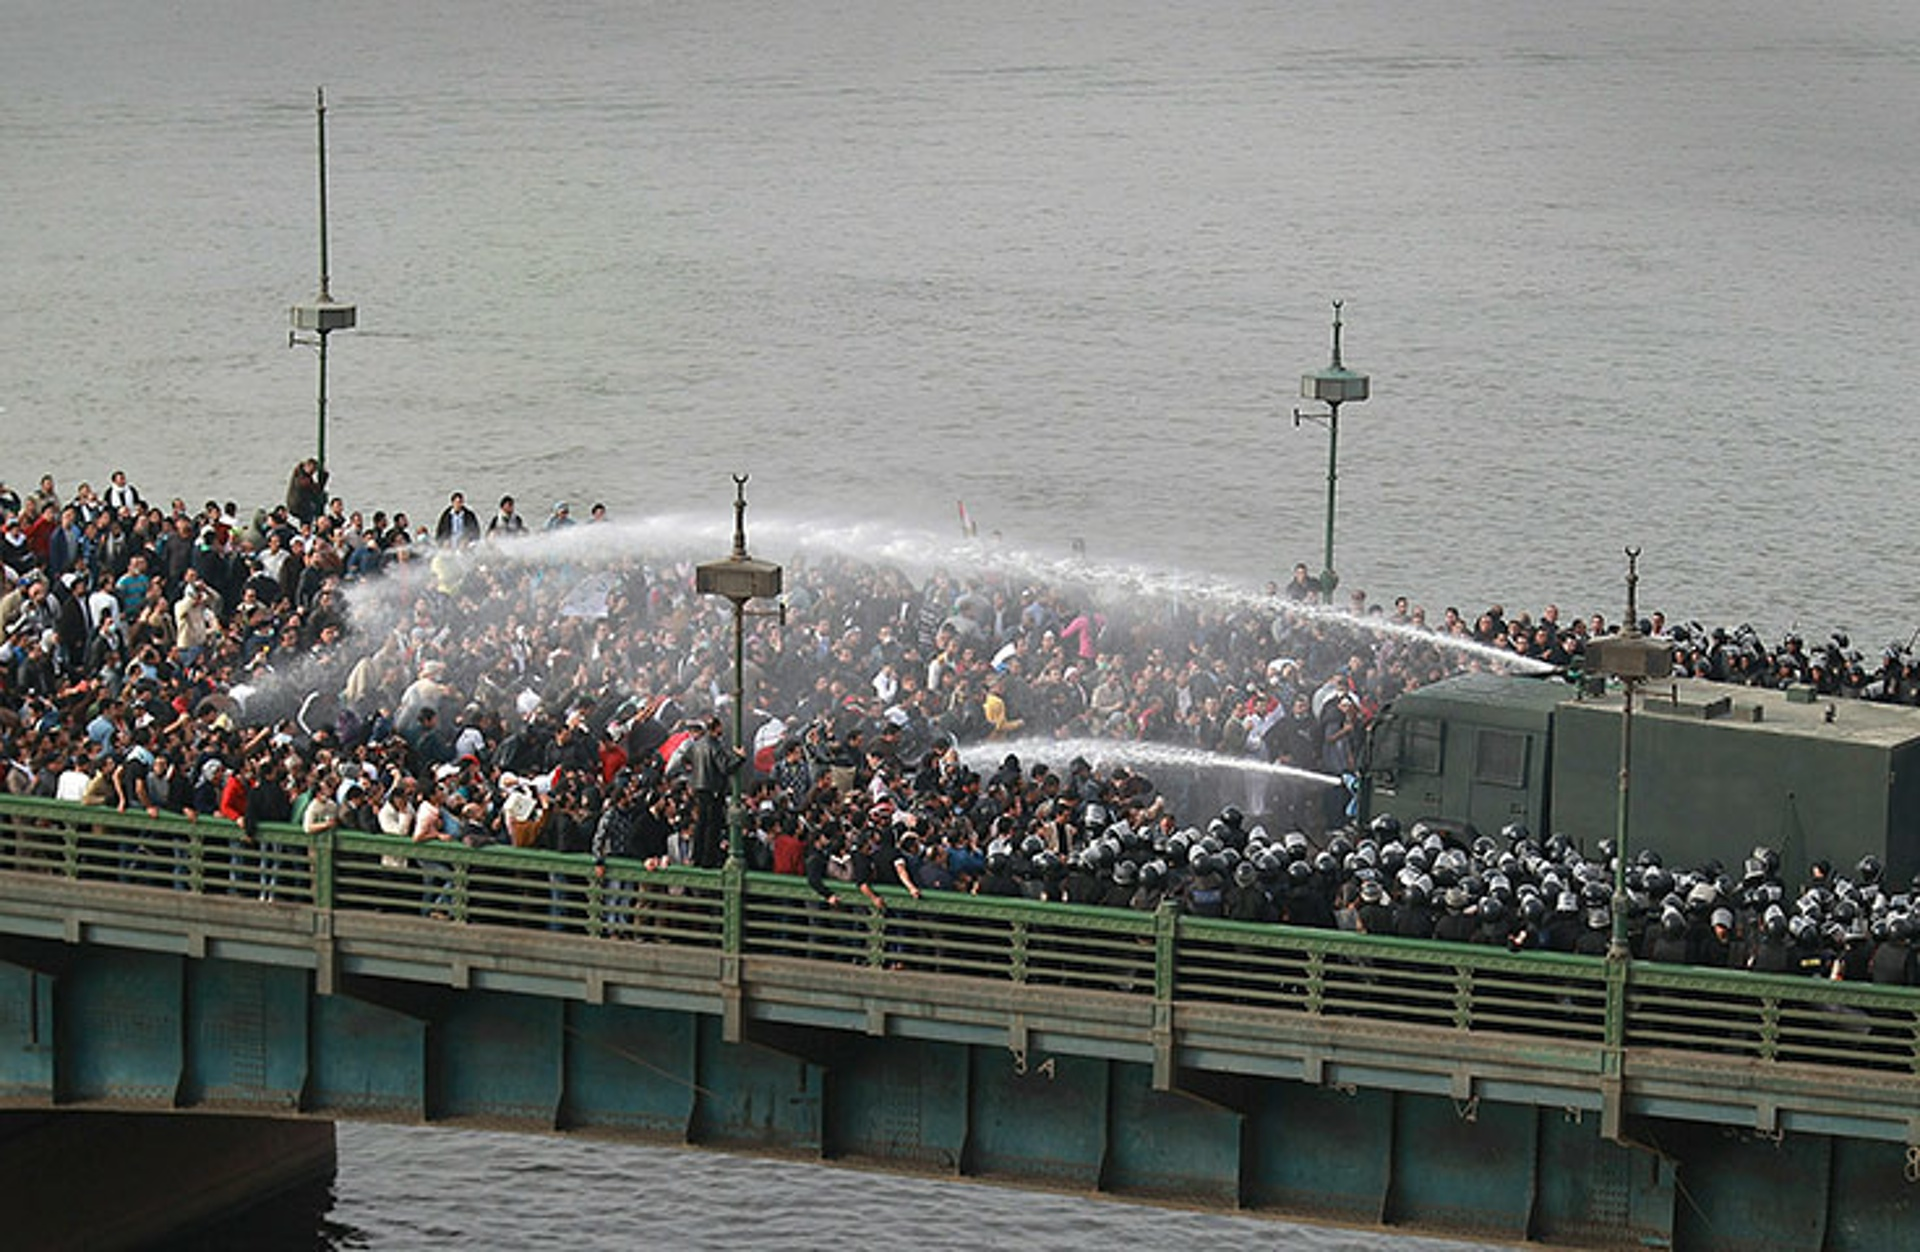 Riot police use water cannons on protesters trying to cross the Kasr al-Nile bridge. Photo: Peter Macdiarmid, Getty Images